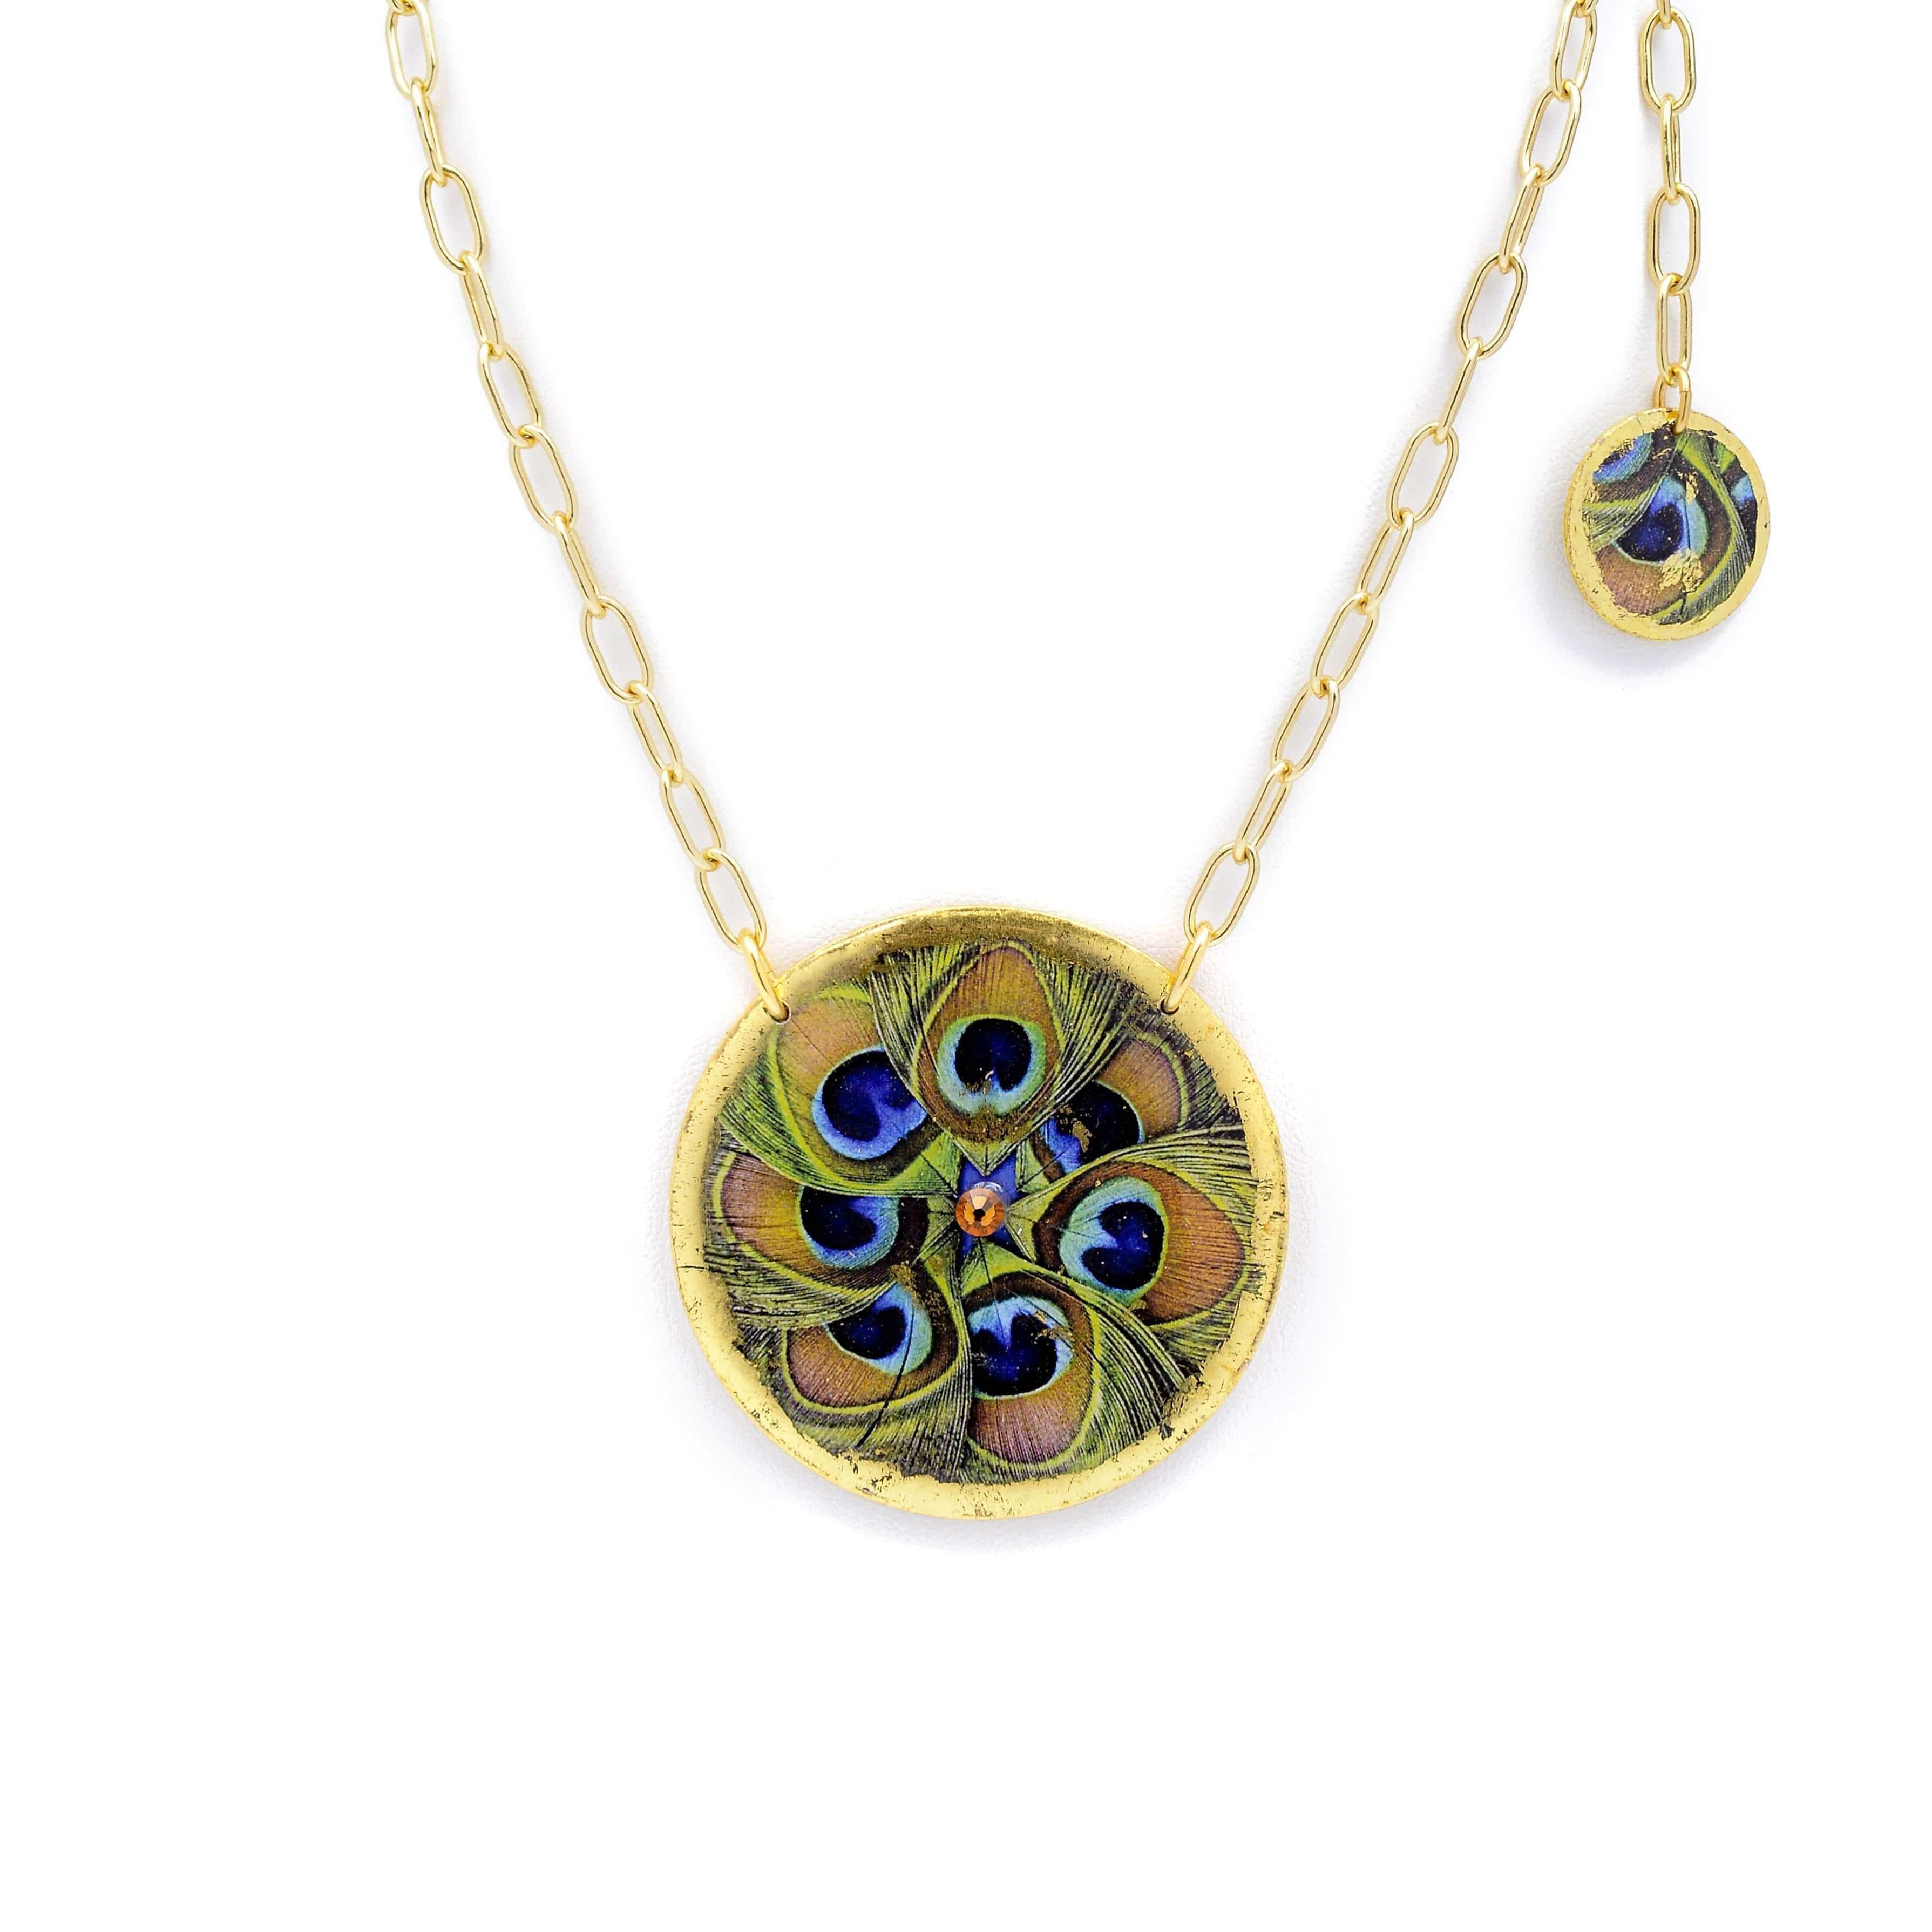 "Feathered Peacock 17"" Gold Pendant - GN211-Evocateur-Renee Taylor Gallery"